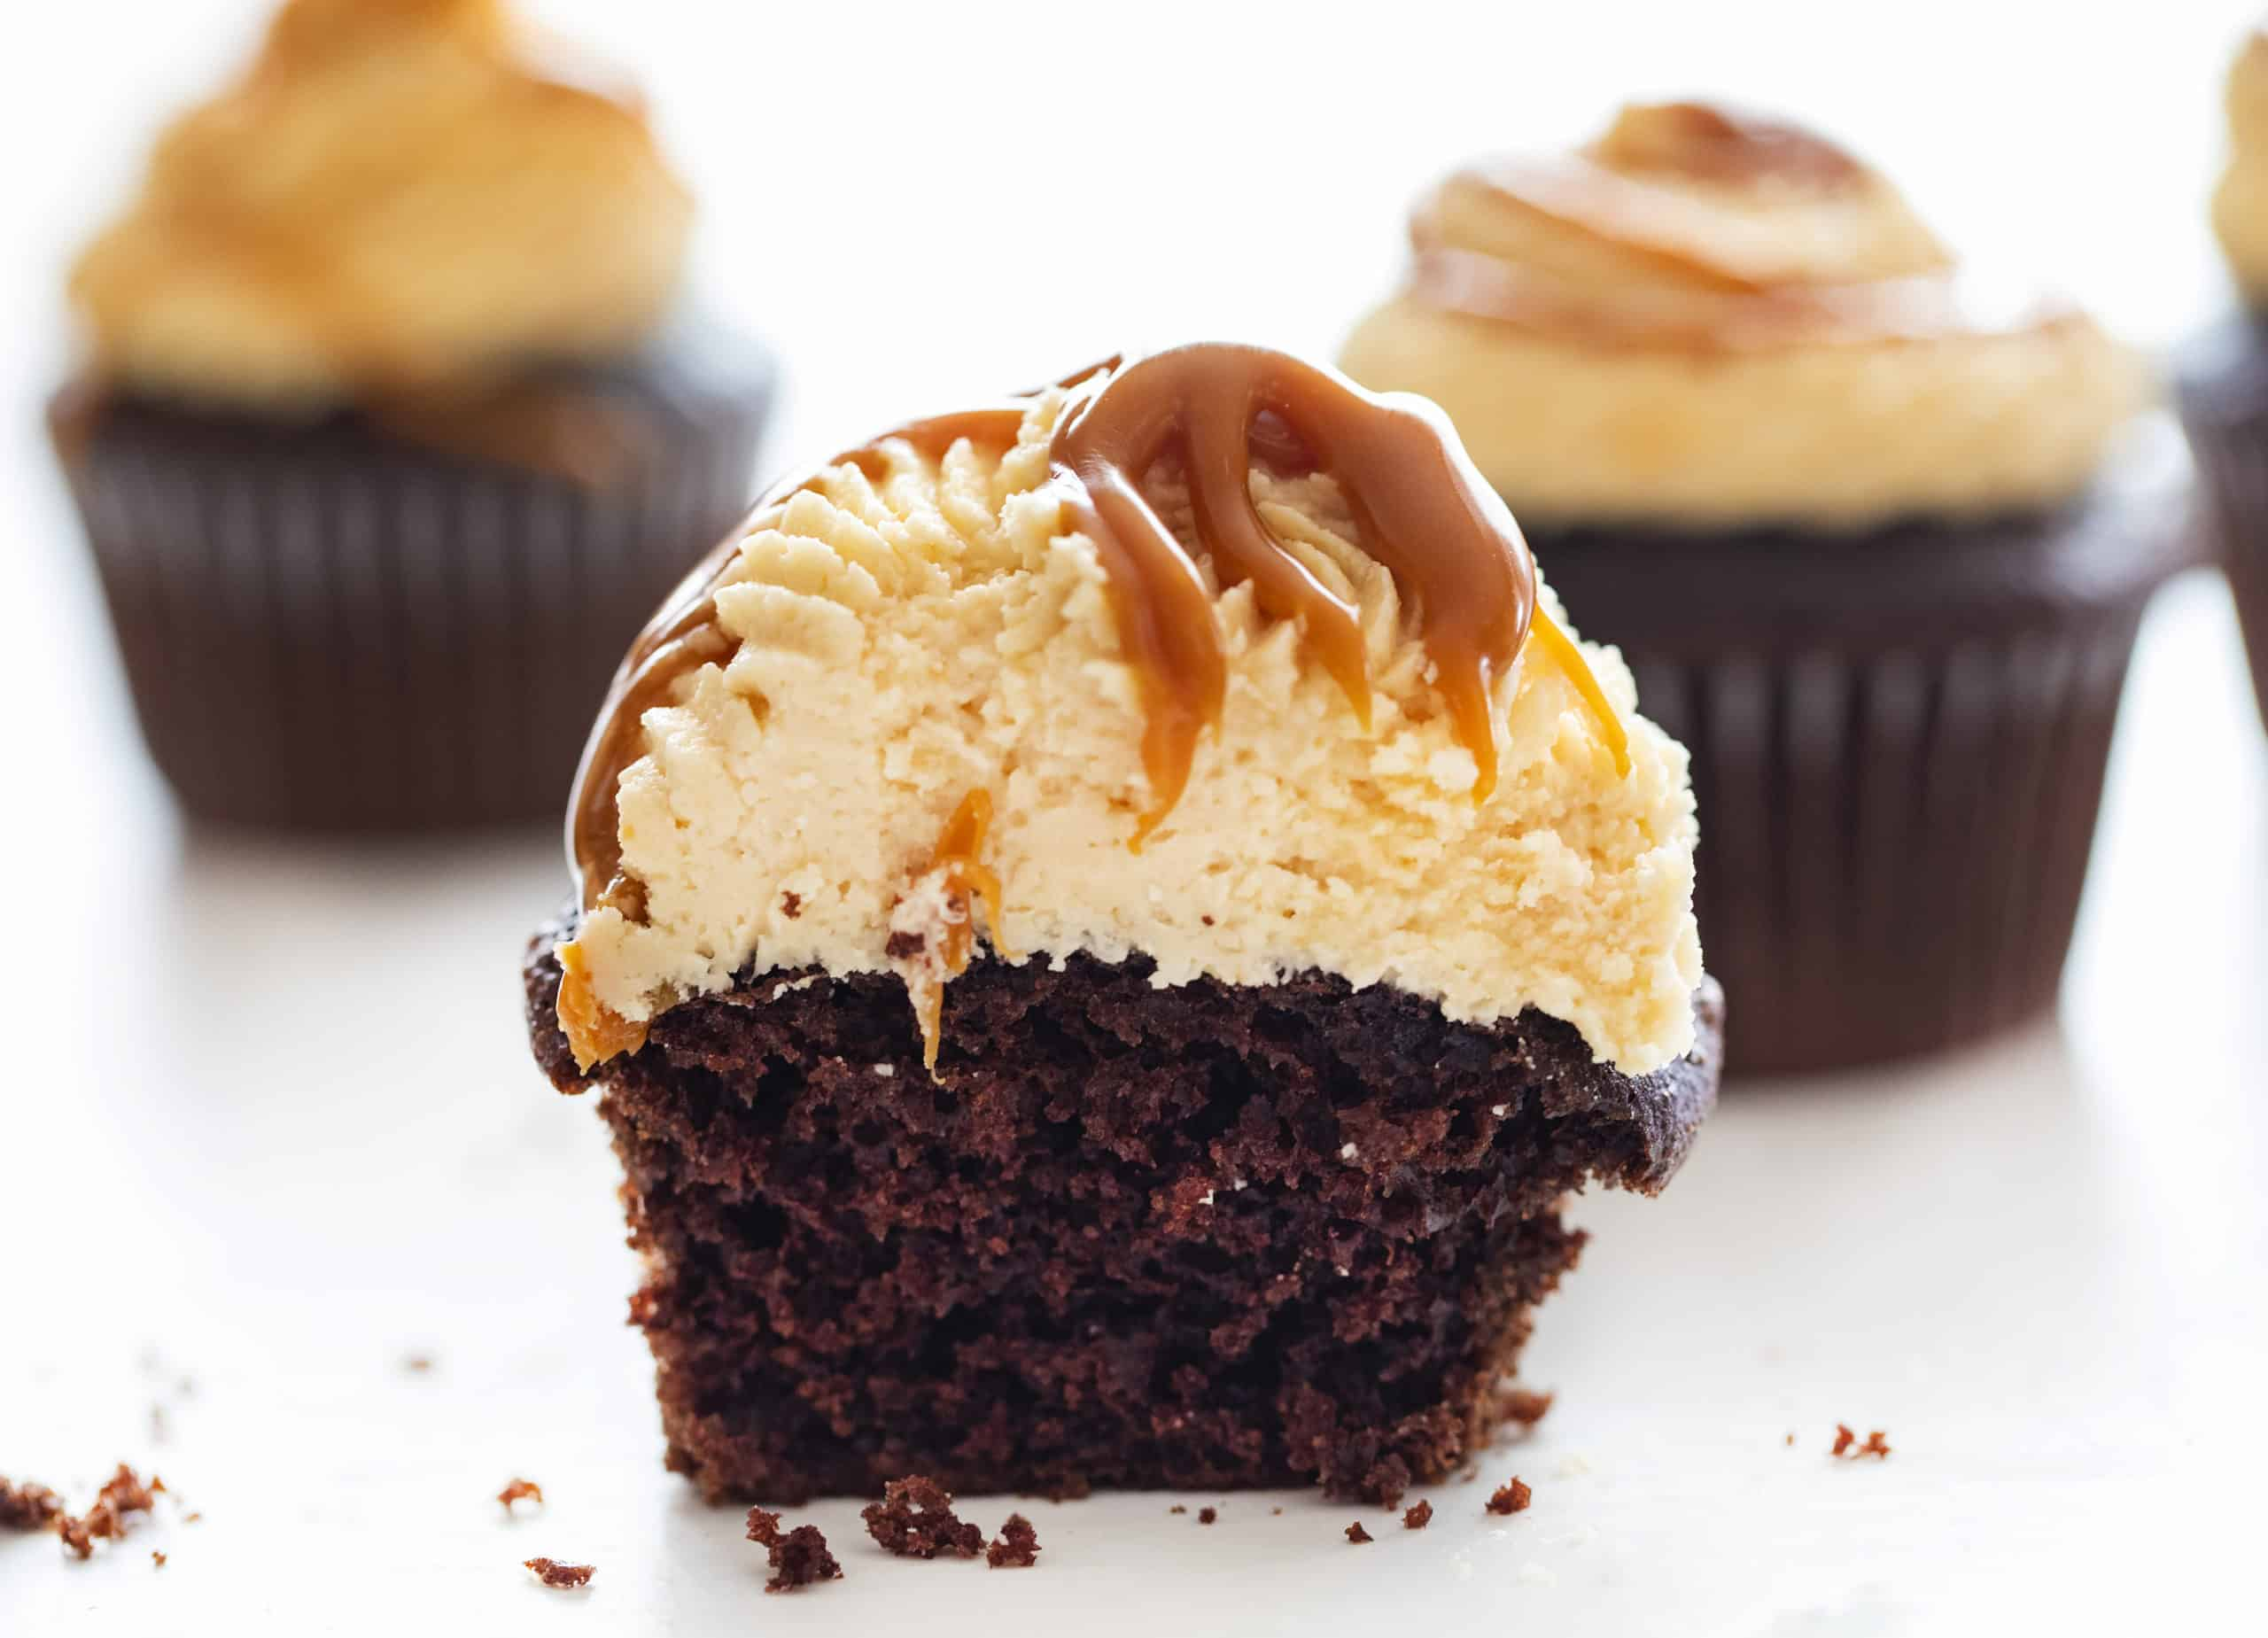 Cut into Chocolate Cupcakes with Salted Caramel Buttercream